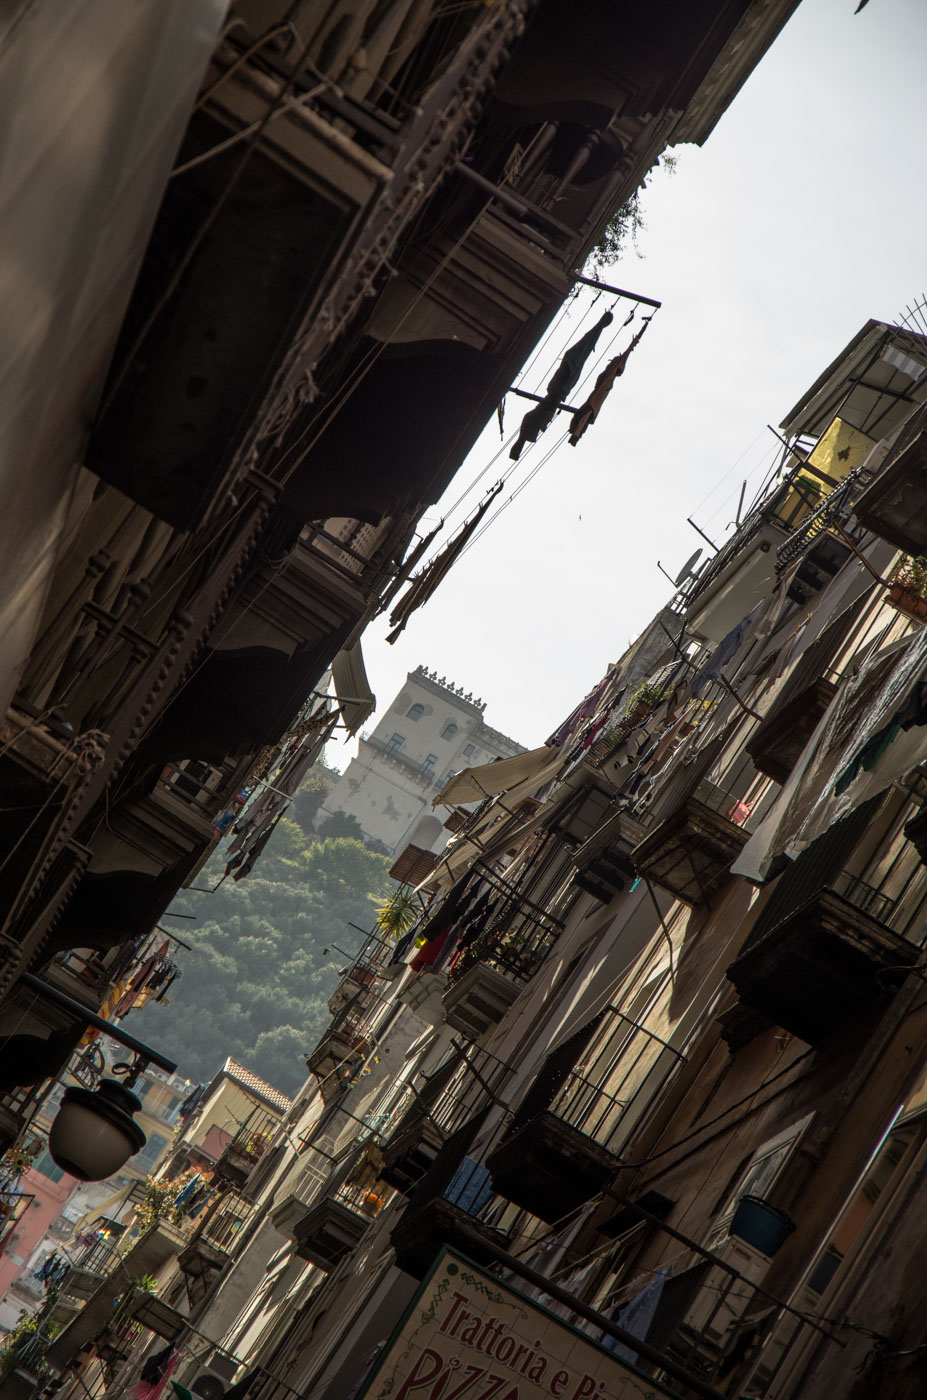 View on a castello in Naples